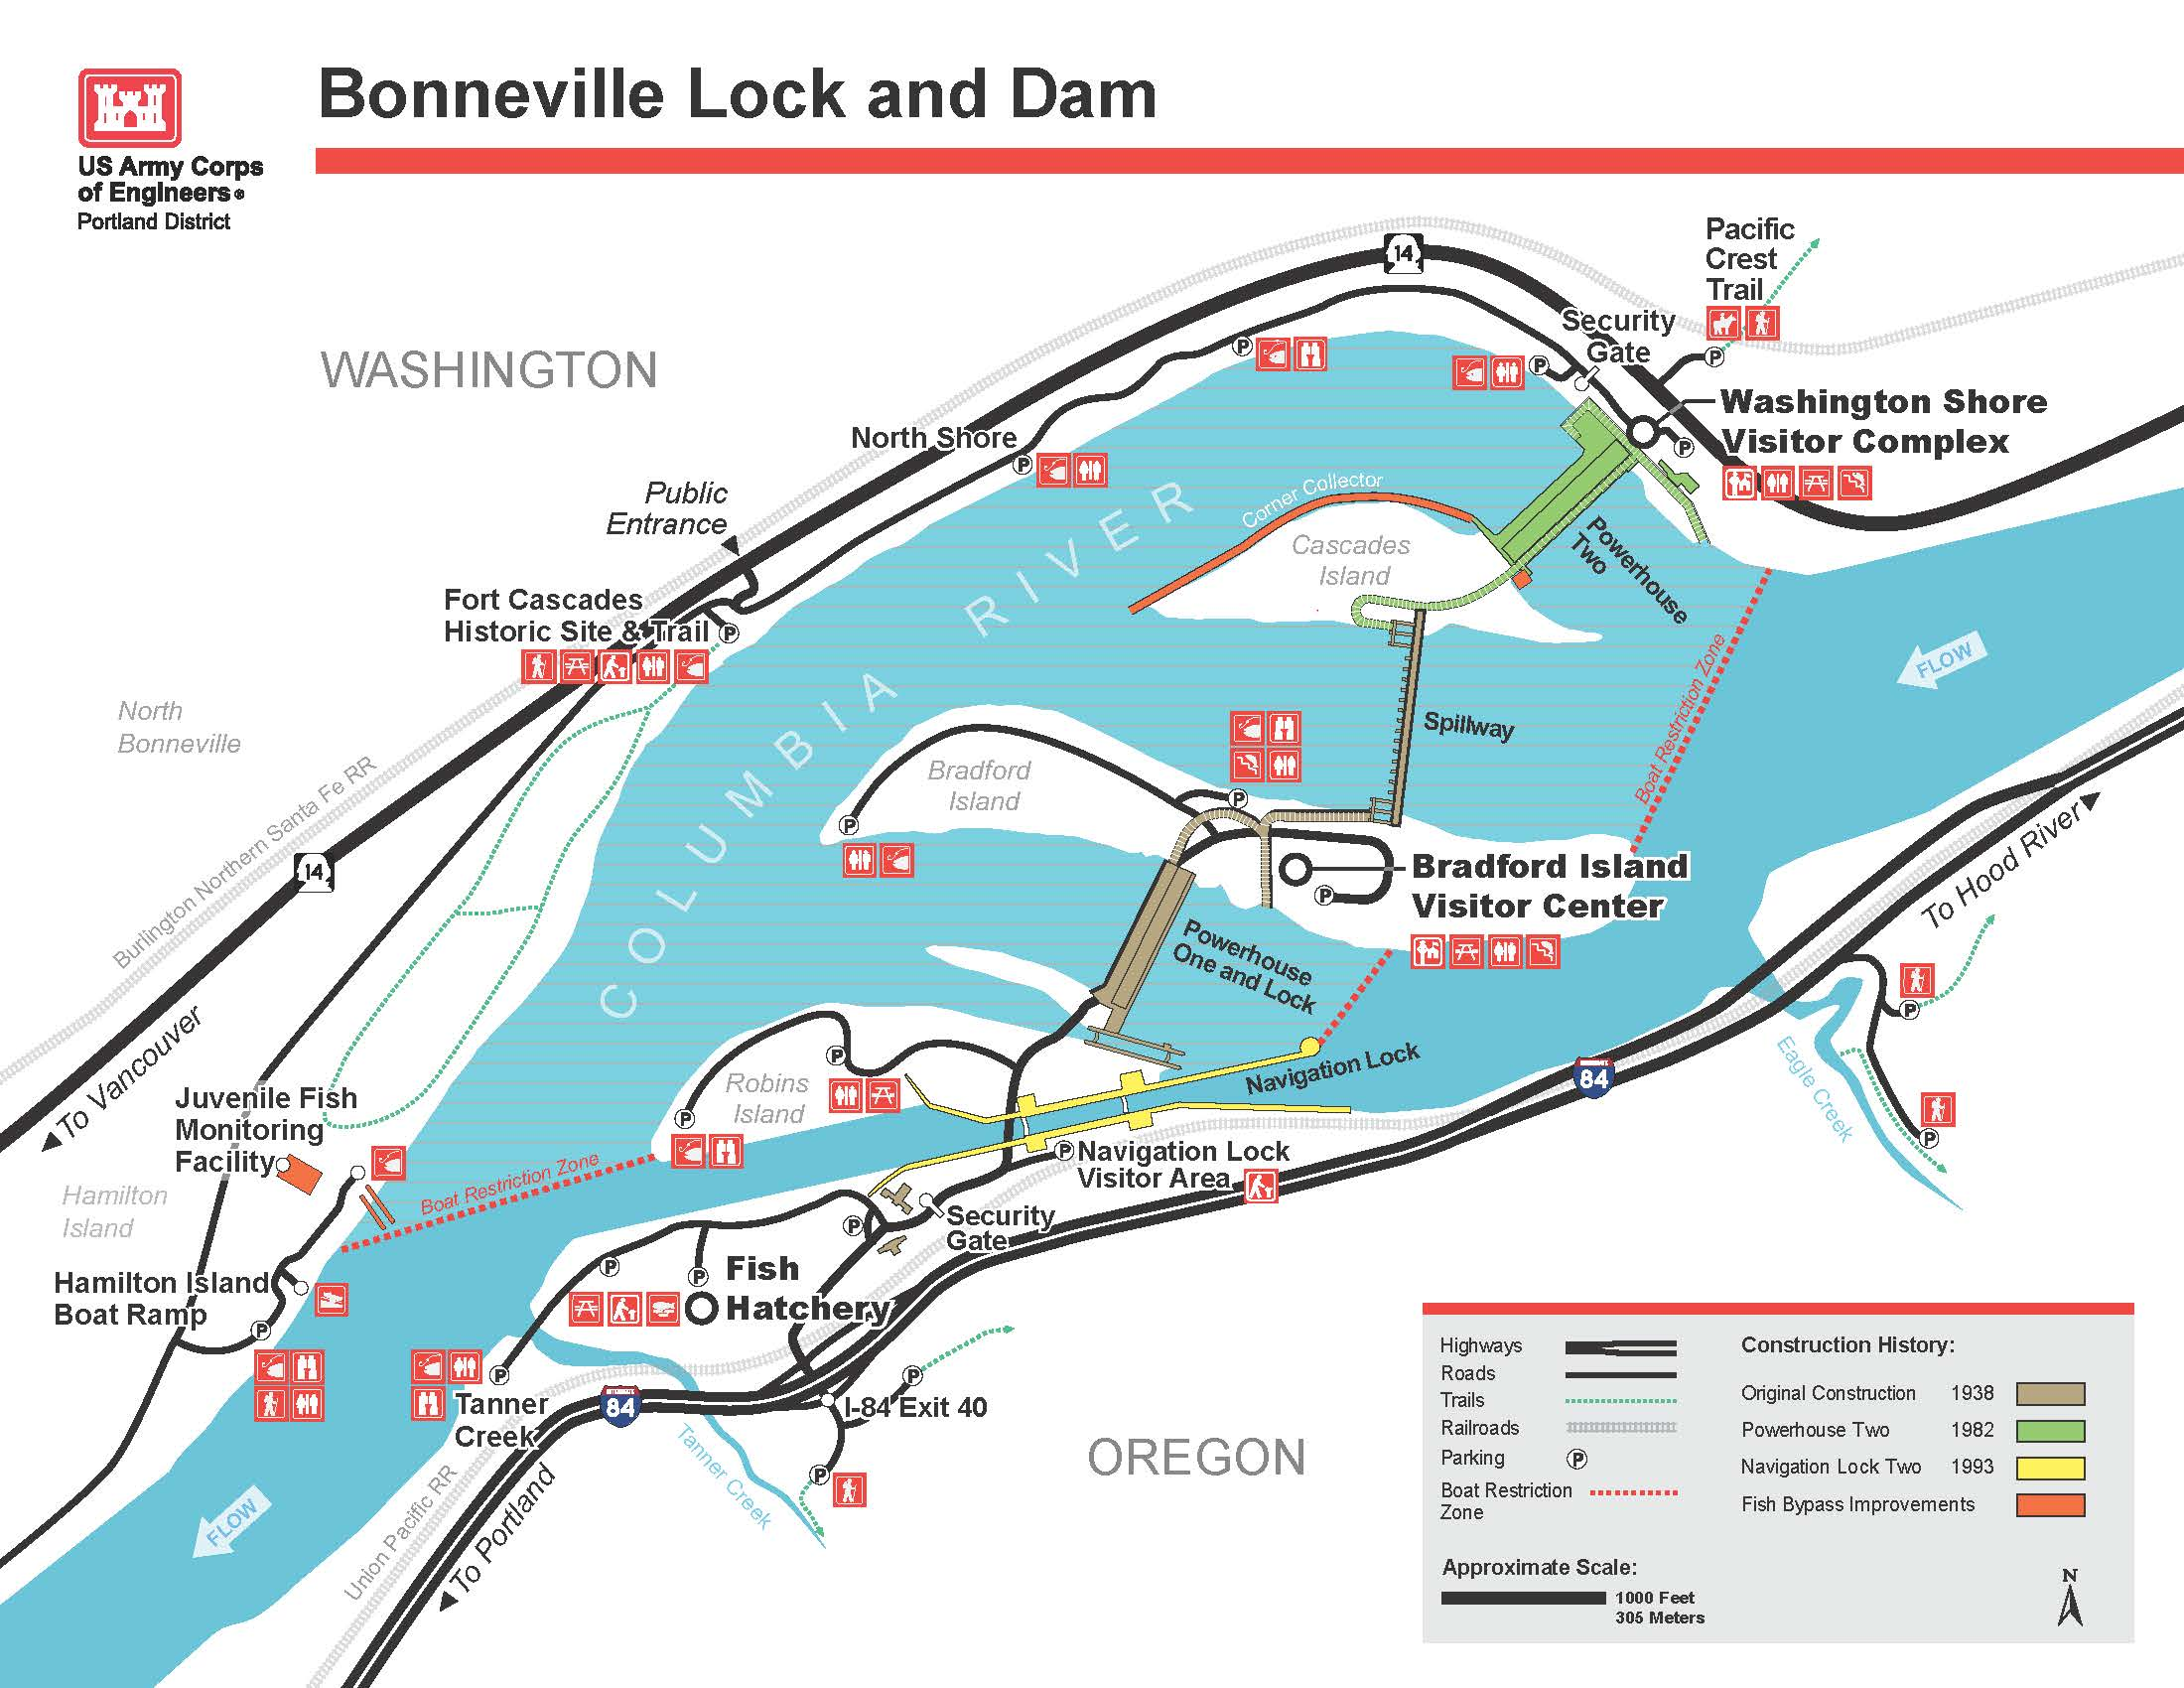 Portland District Locations Columbia River Bonneville Lock & Dam